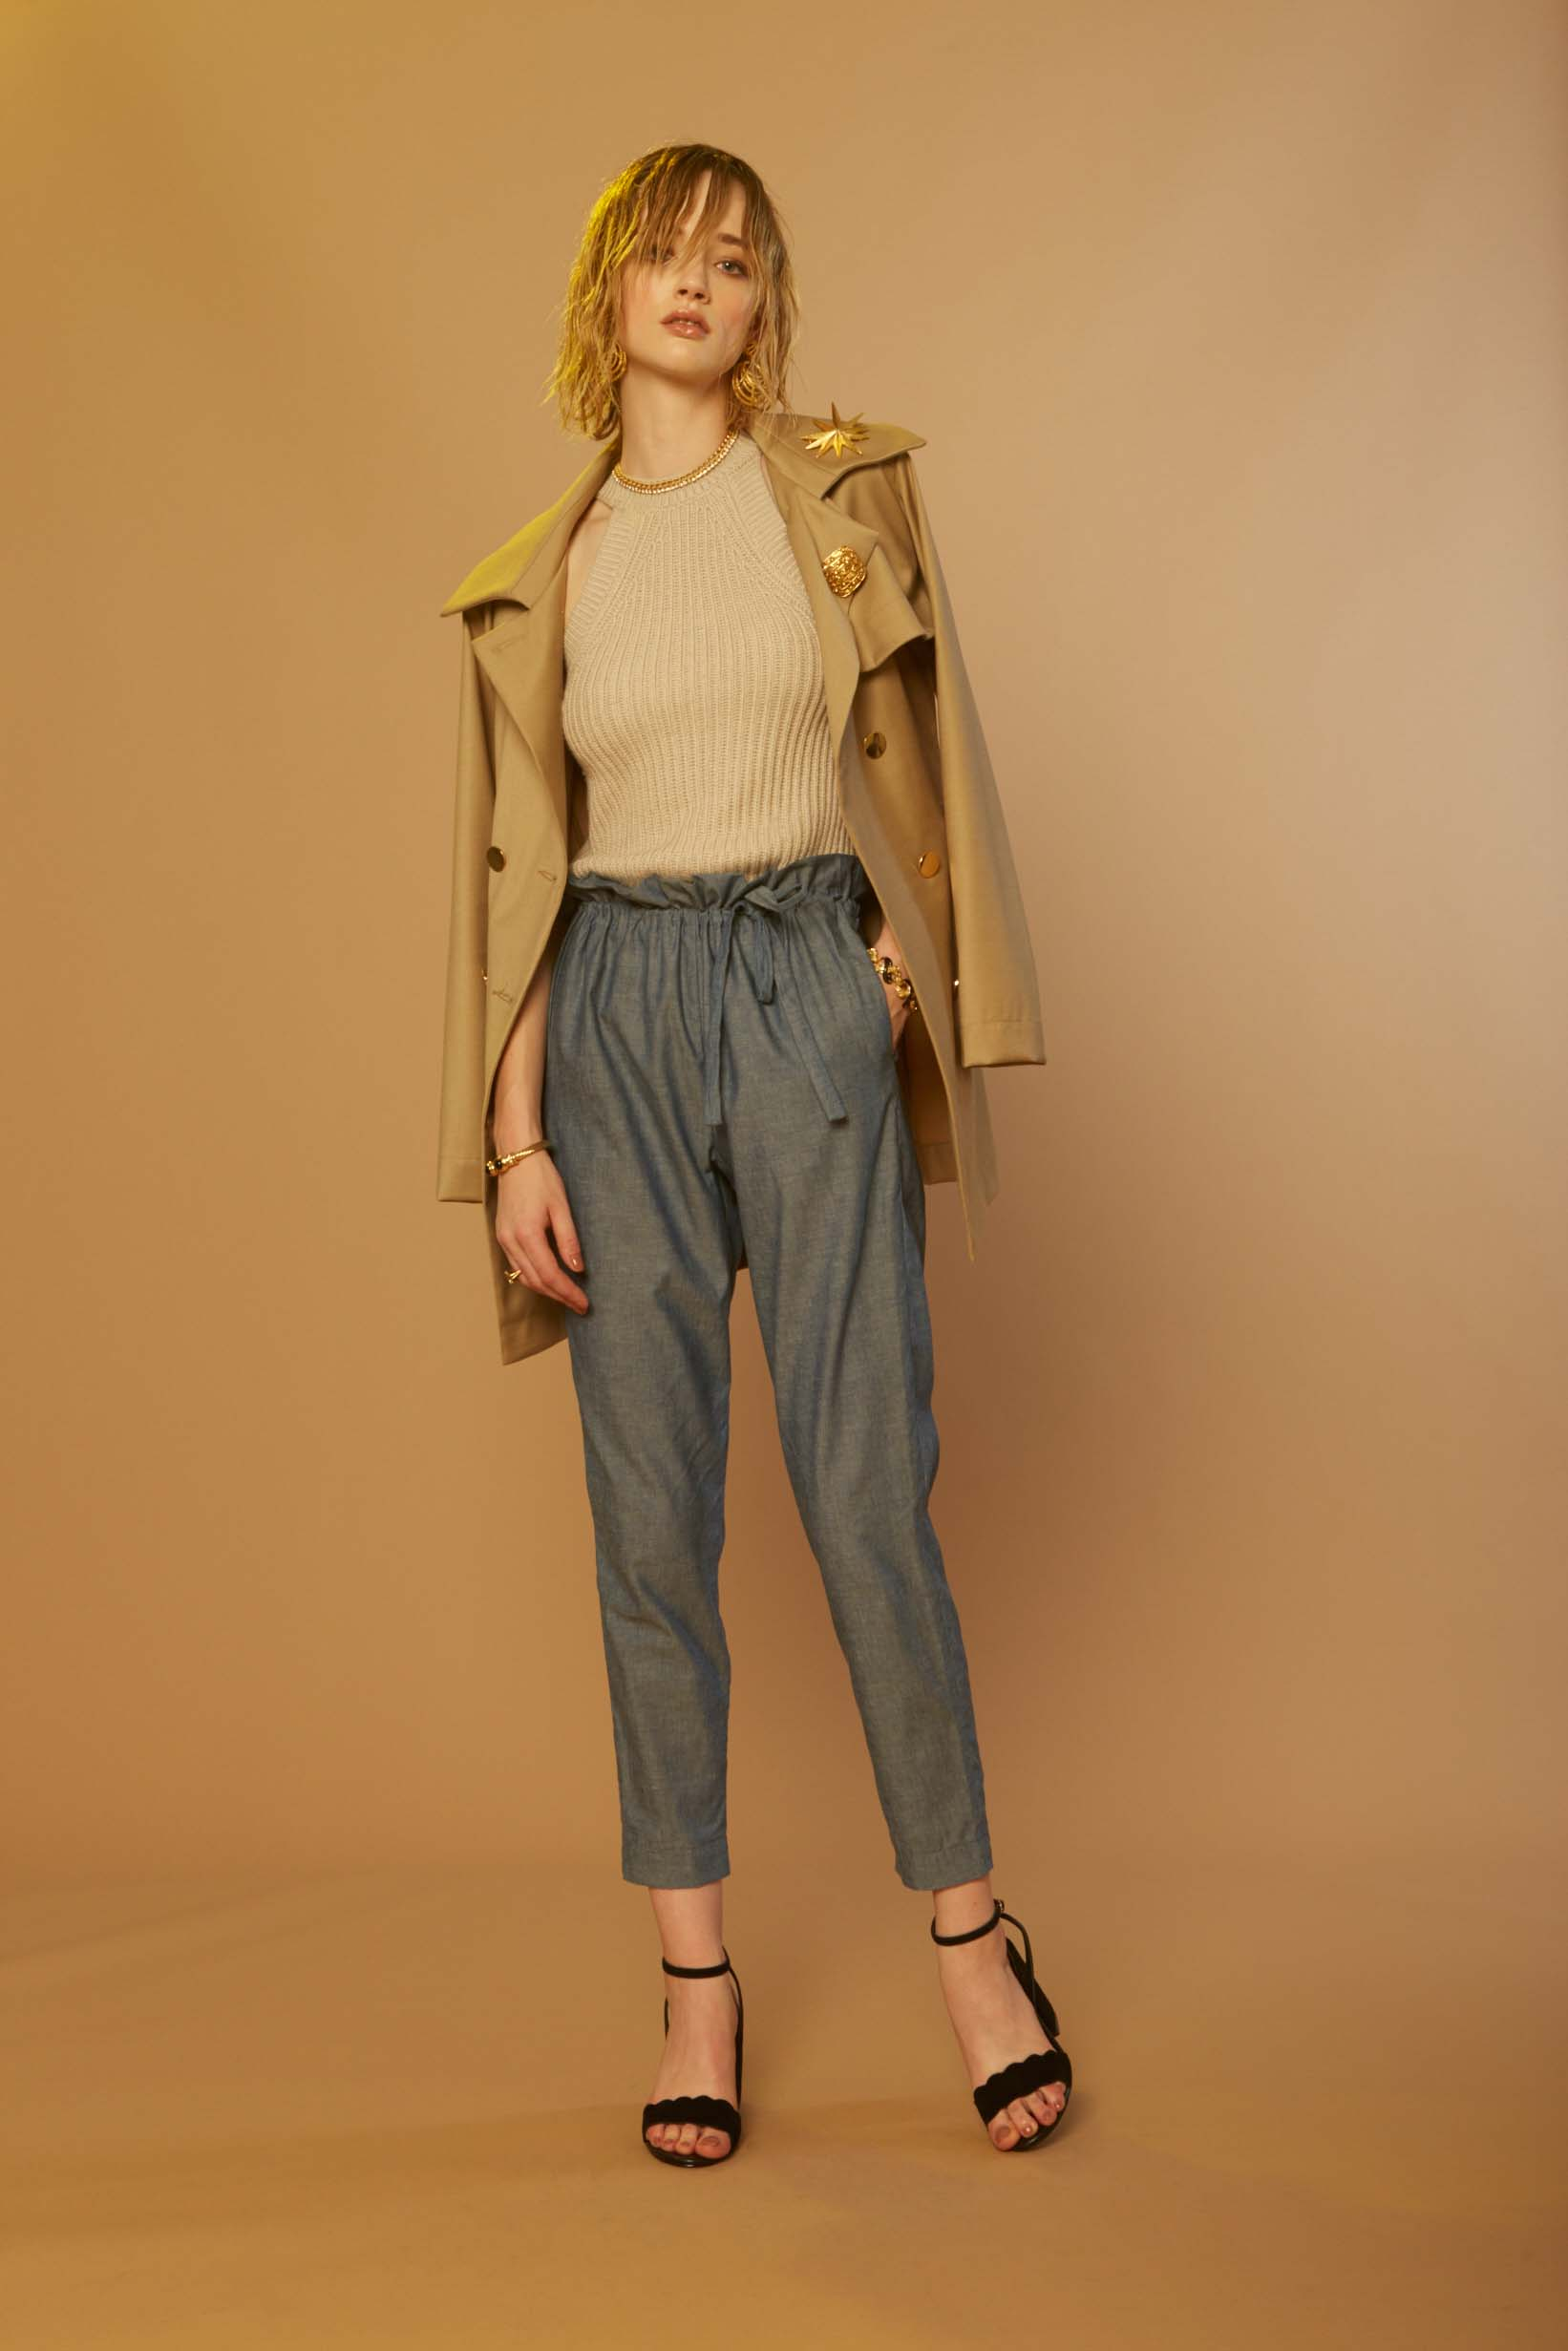 Liam Aleatory Trench, Aleatory Tank & Playhouse Pant